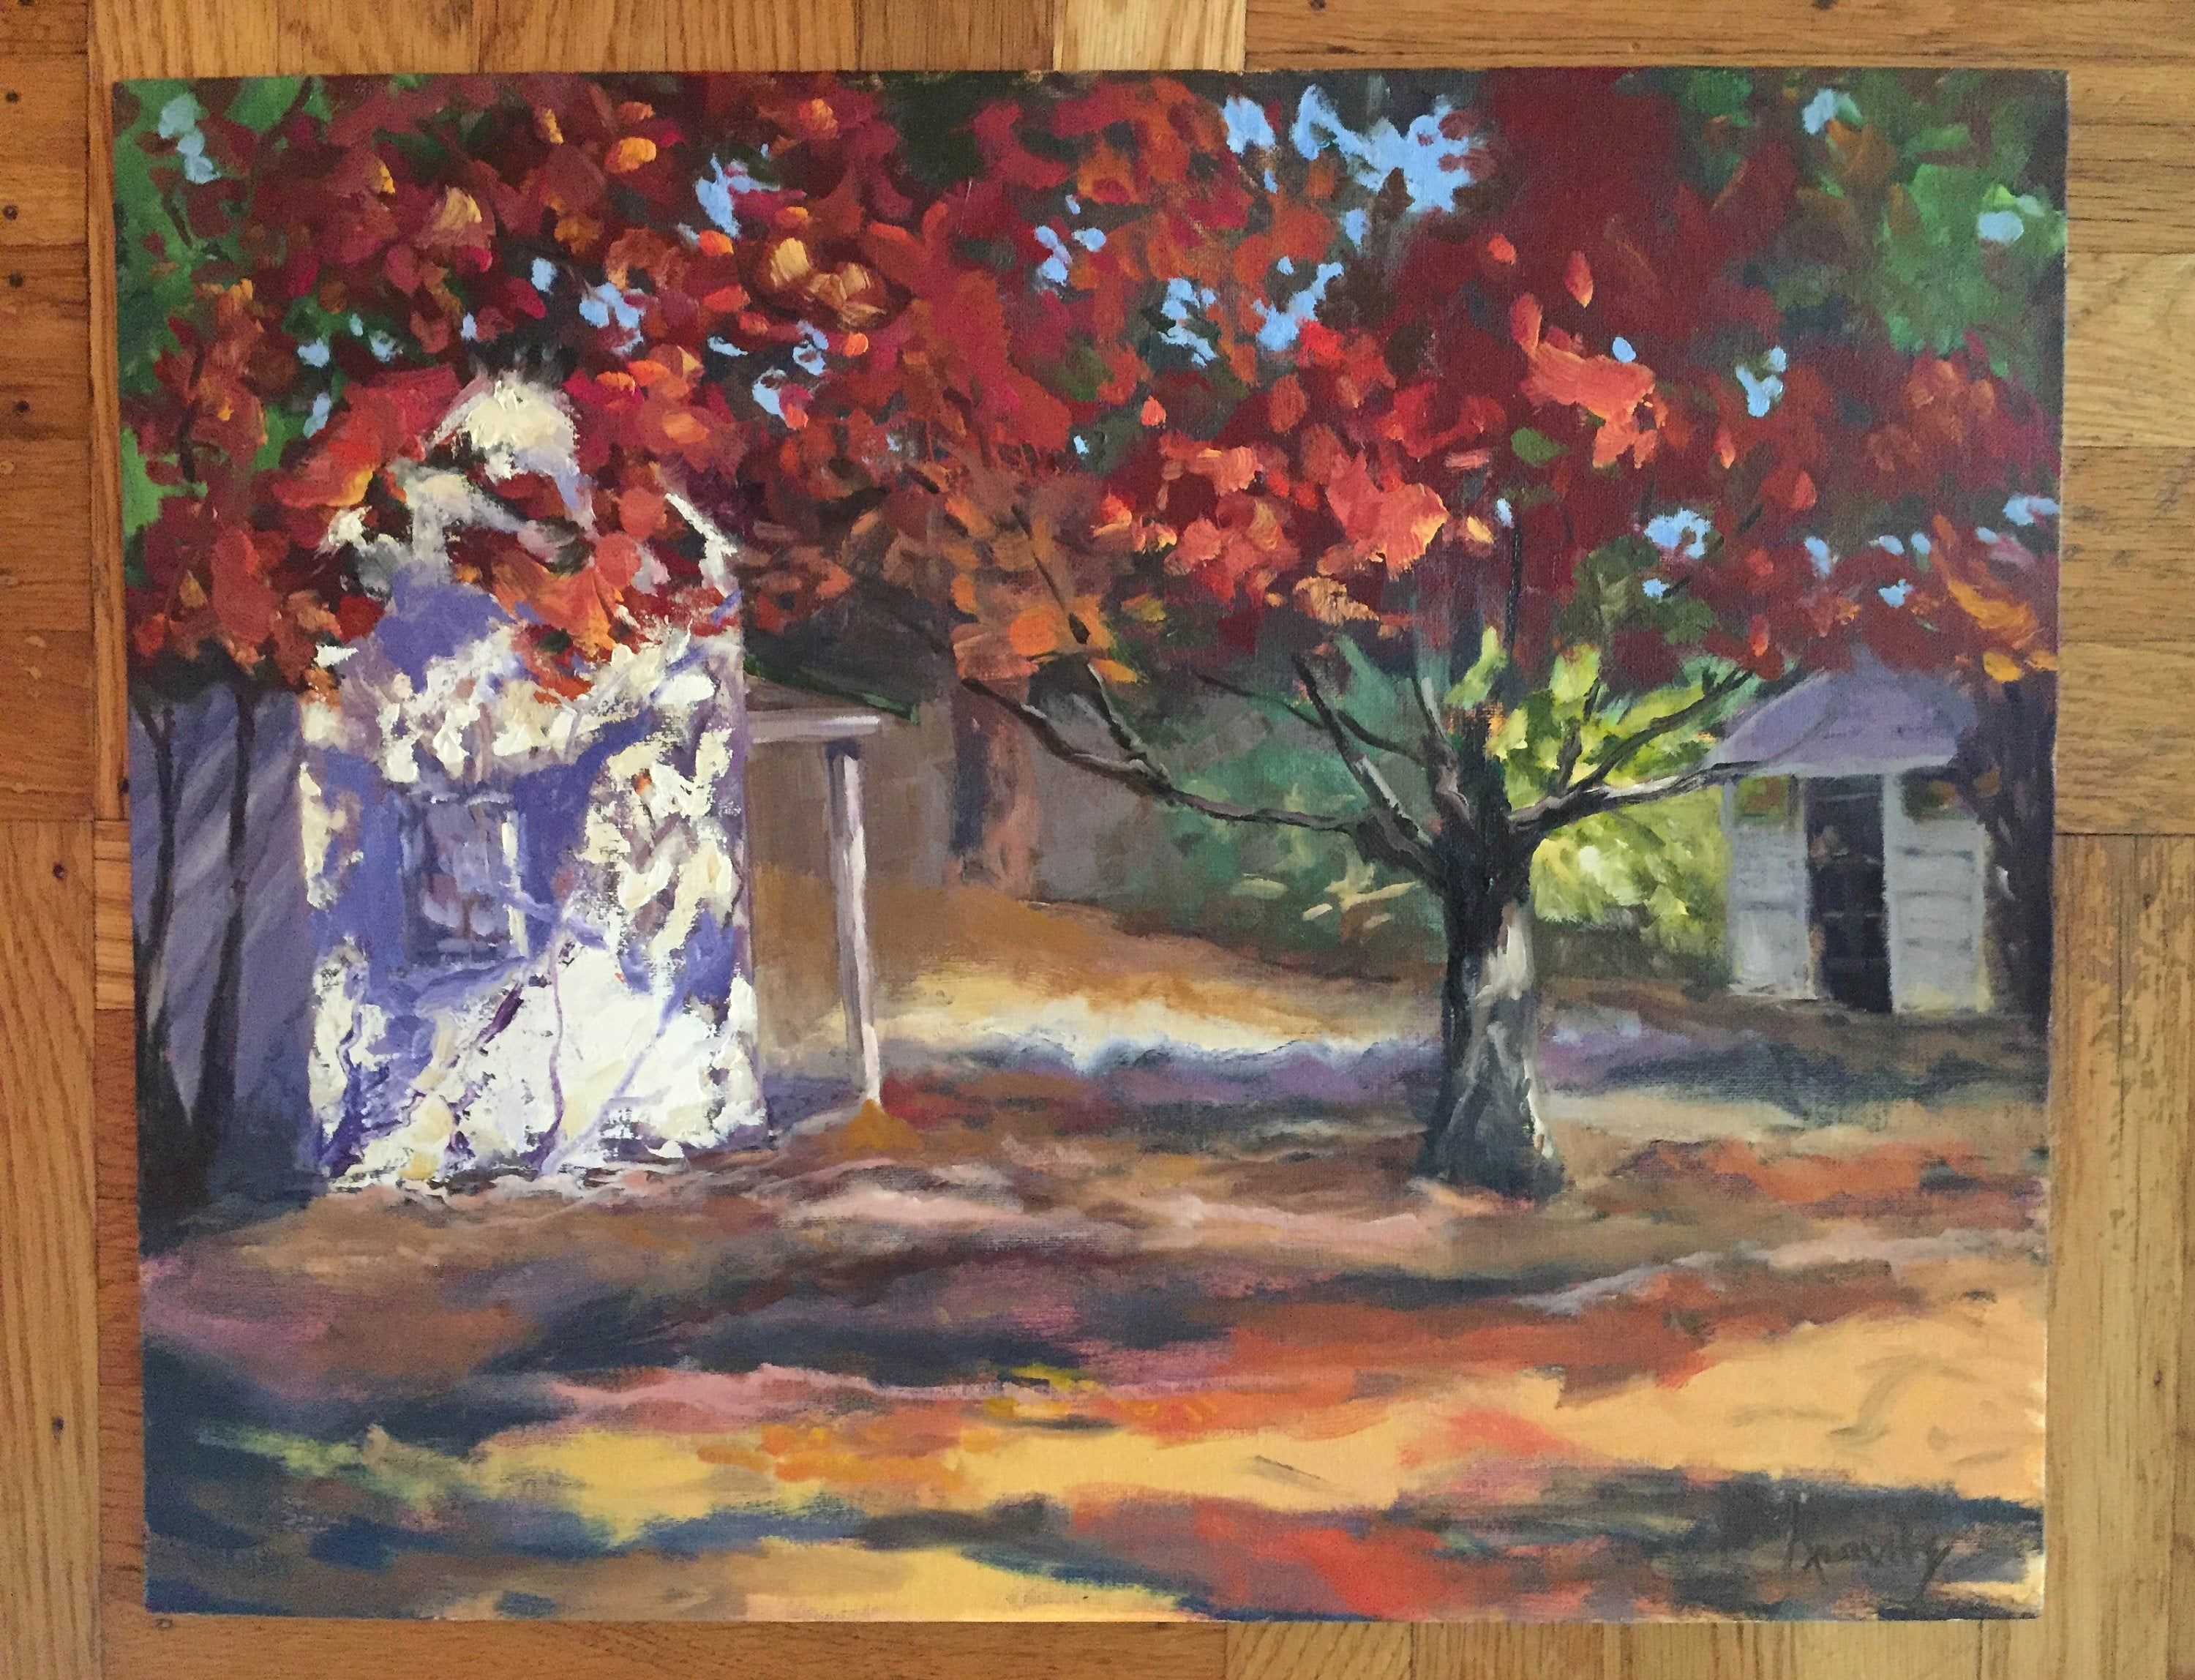 California plein air landscape of autumn trees leaves and